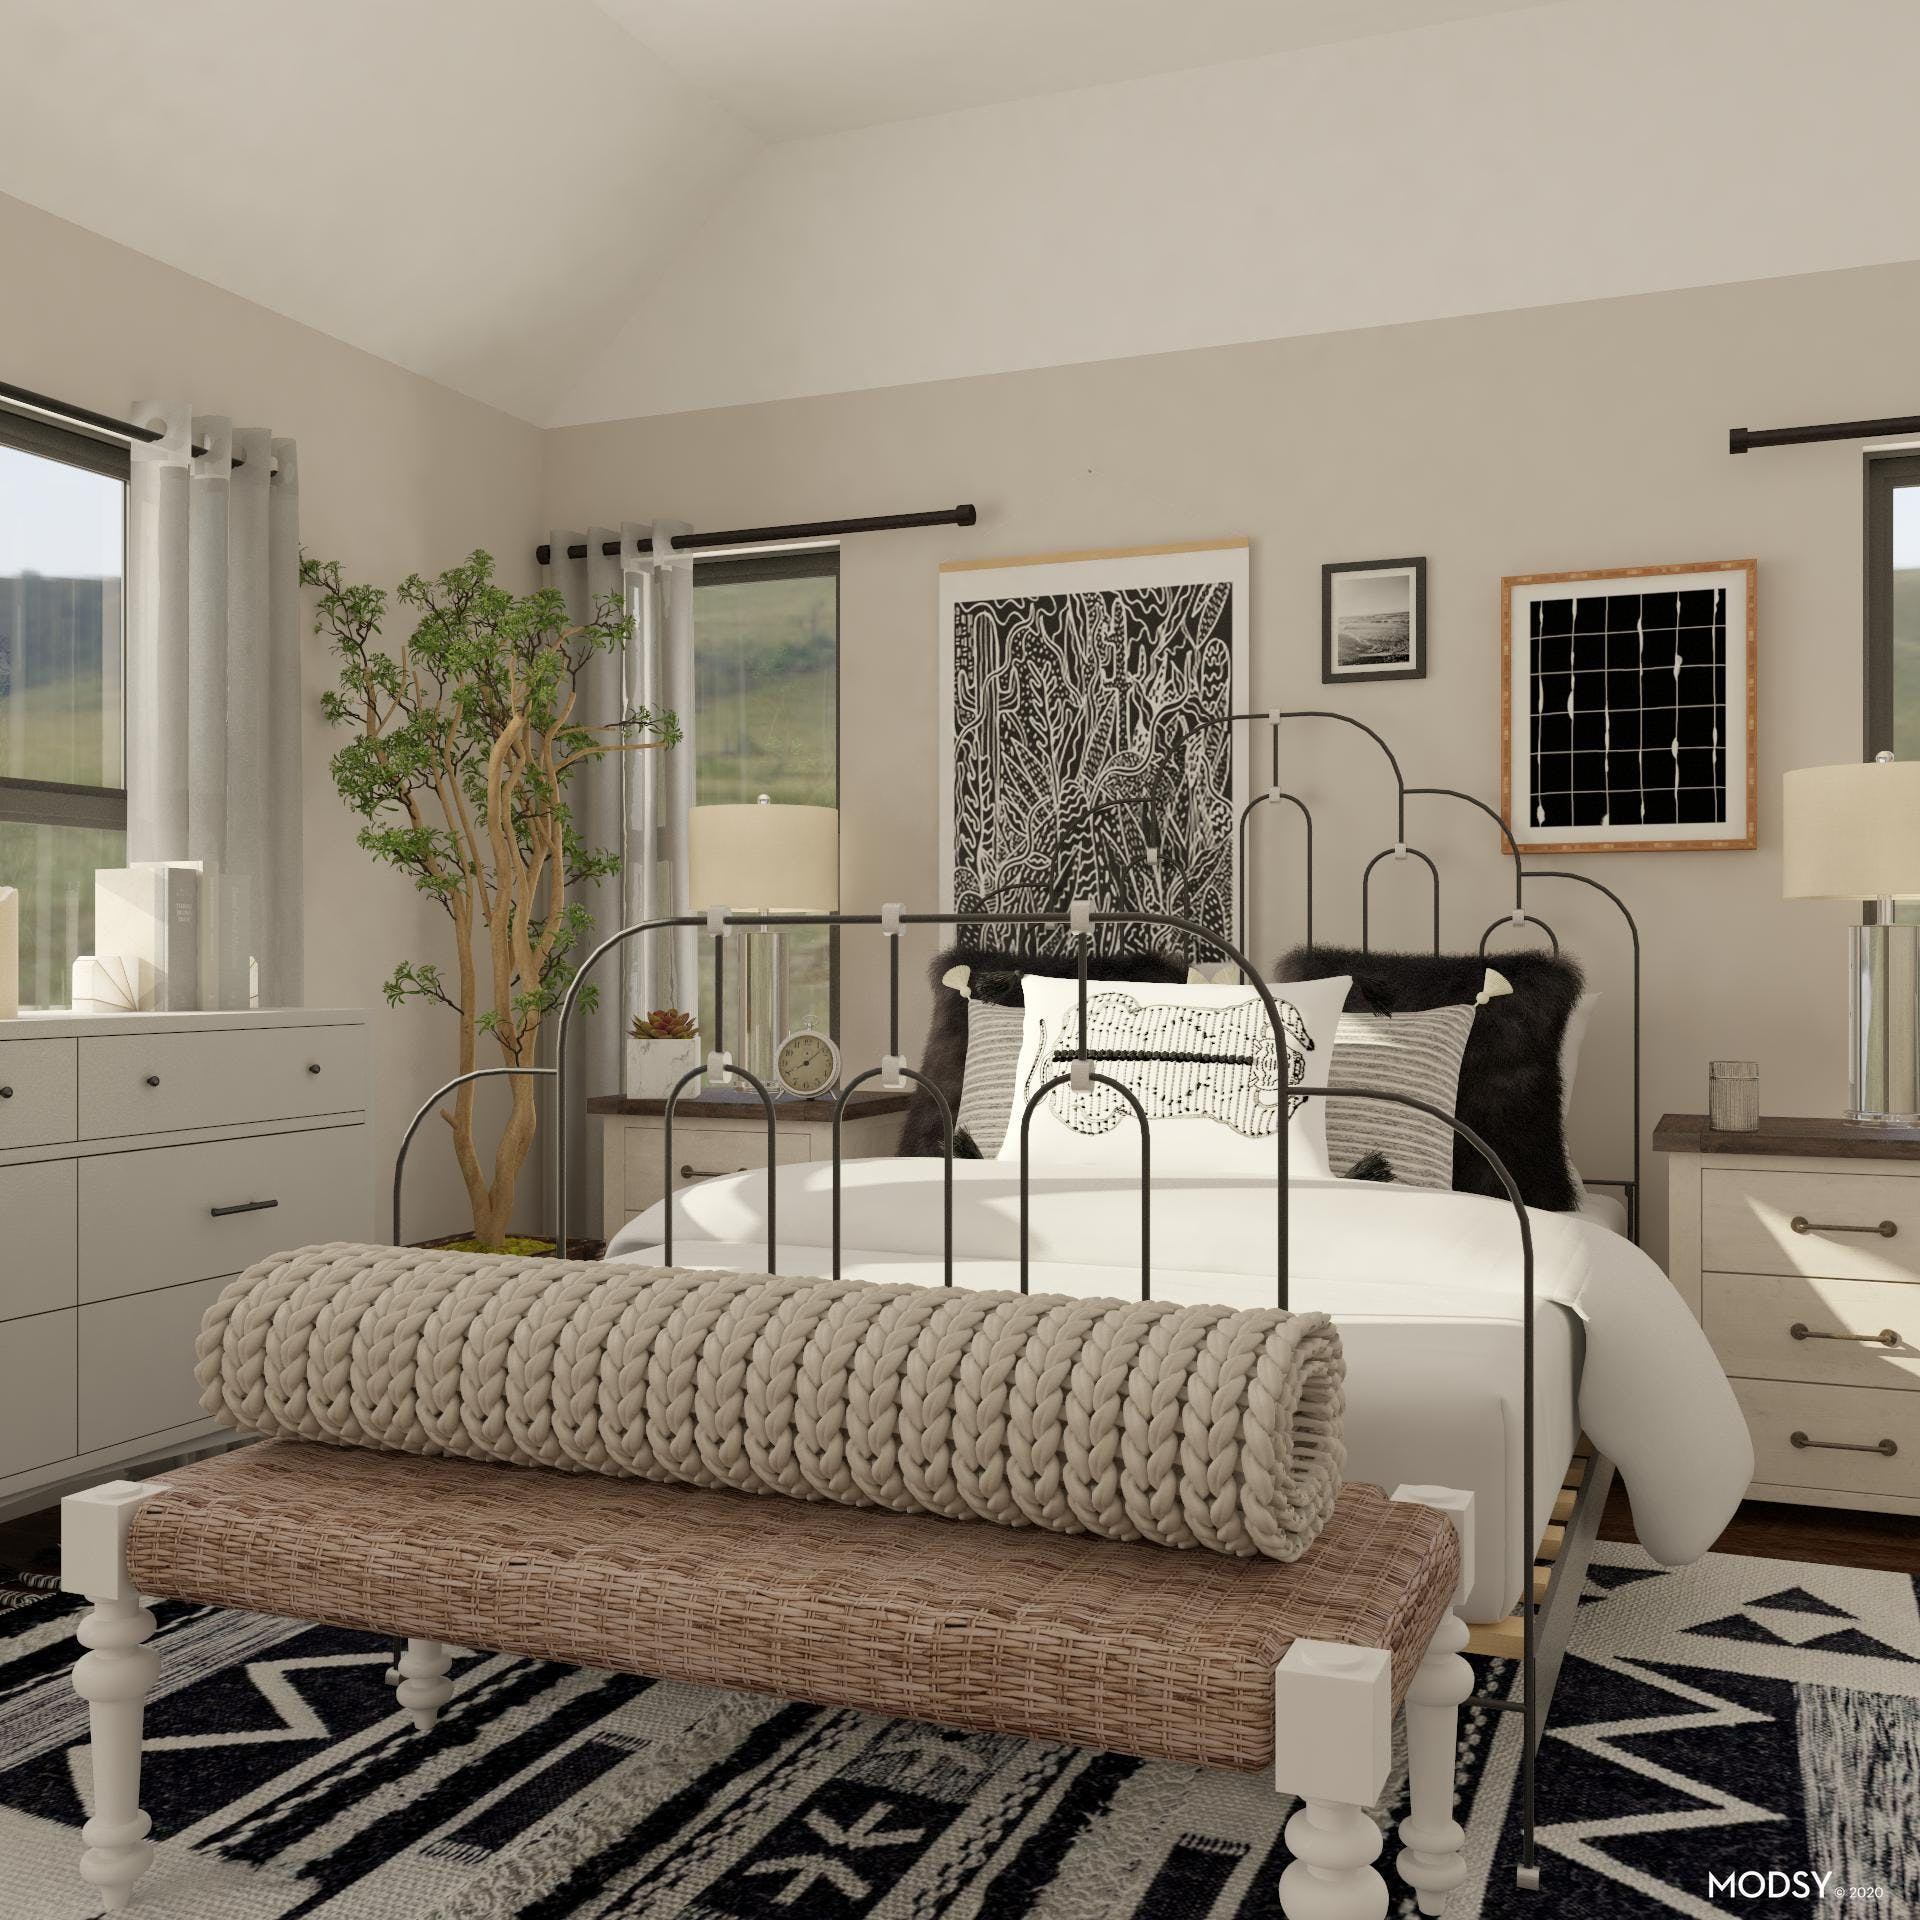 Eclectic Bedroom: Black And White Remix